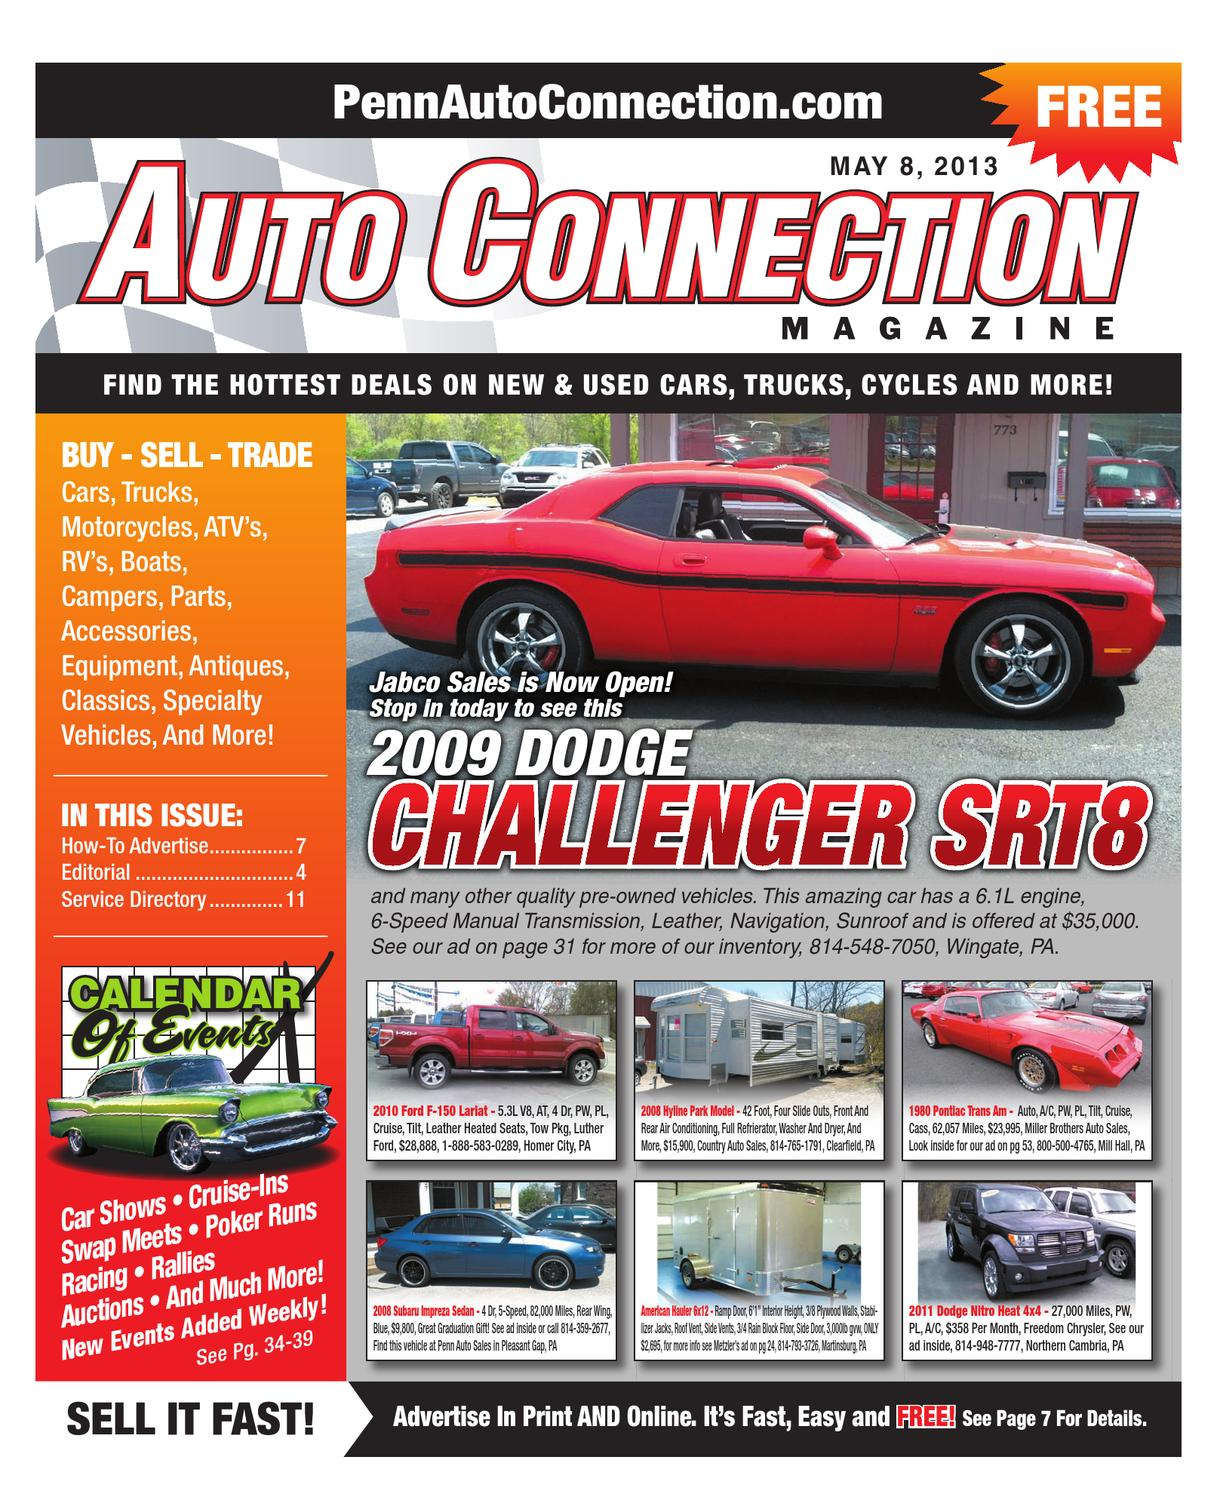 05 08 13 auto connection magazine by auto connection magazine issuu fandeluxe Images